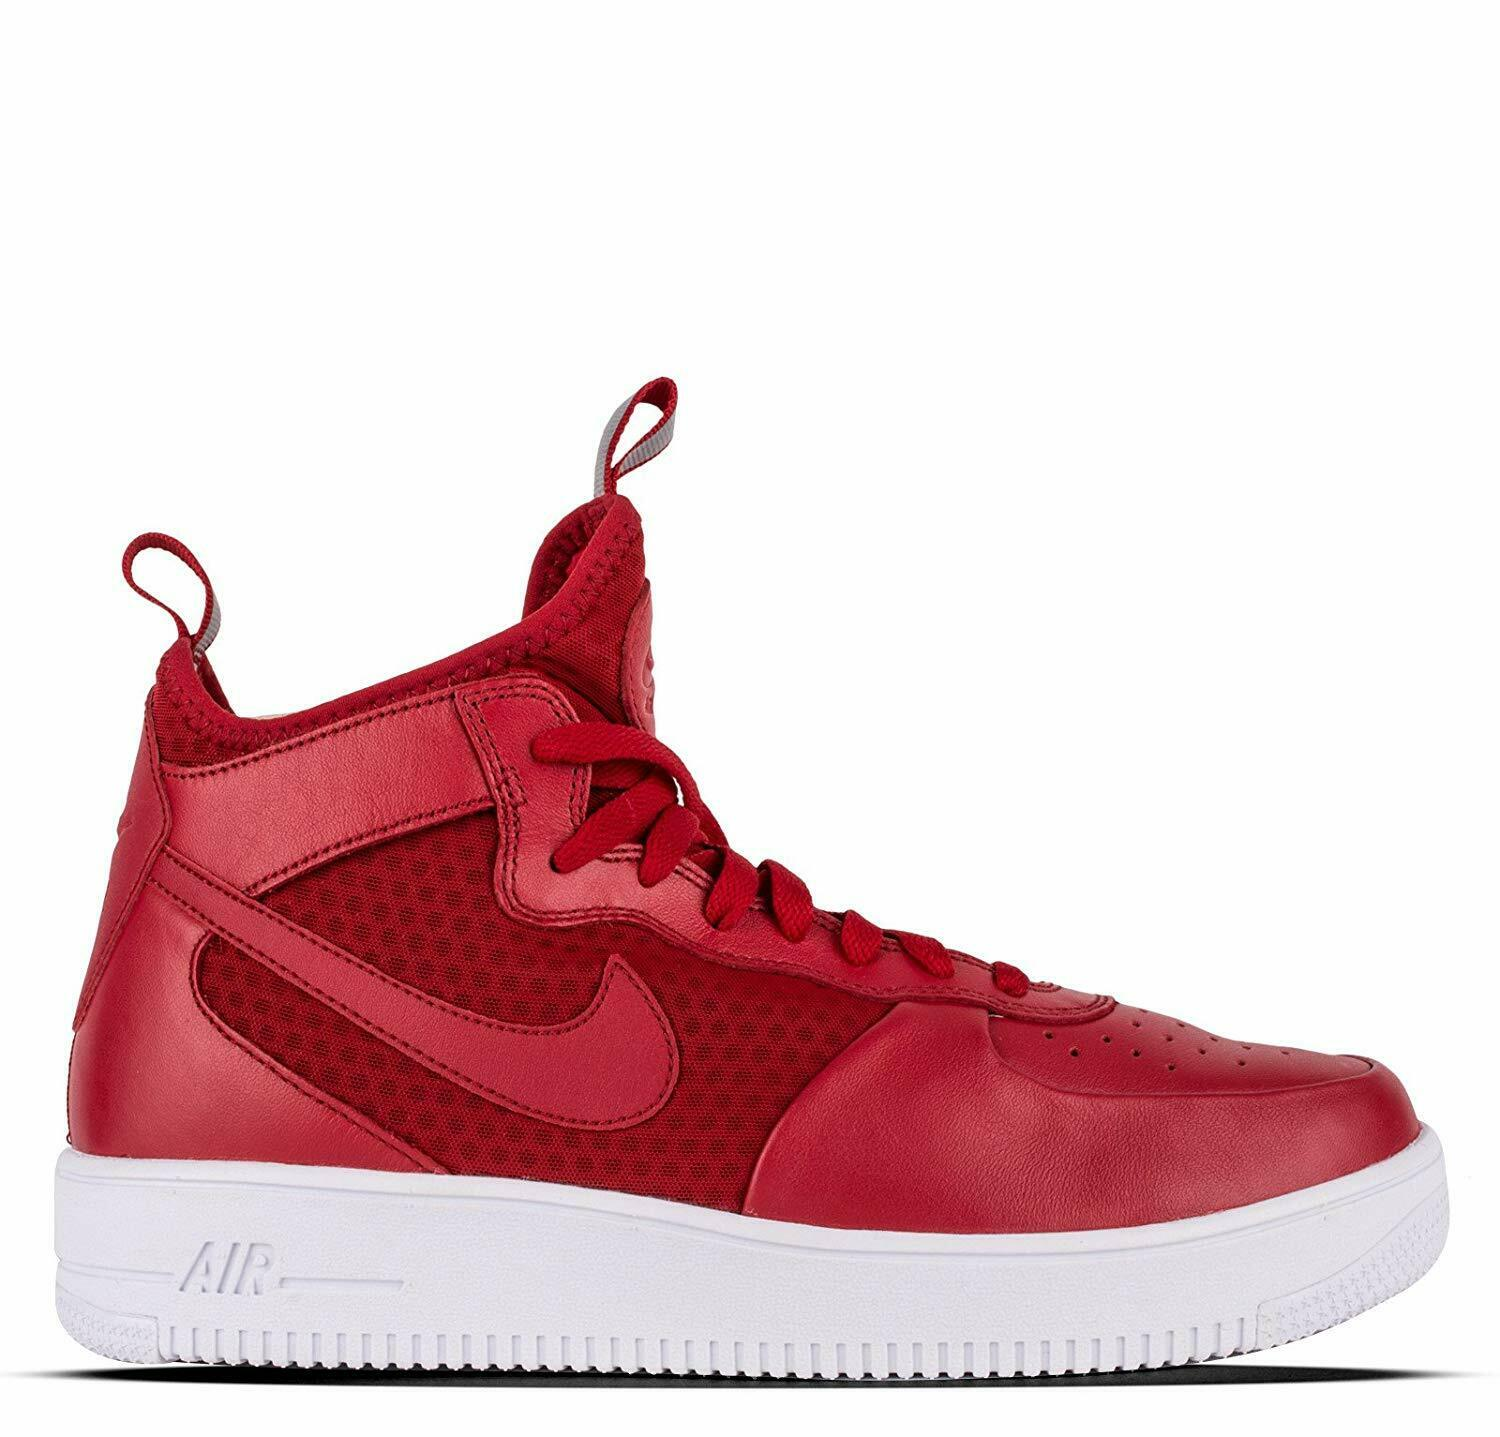 Nike Men's Air Force 1 Ultraforce Mid shoes Gym Red